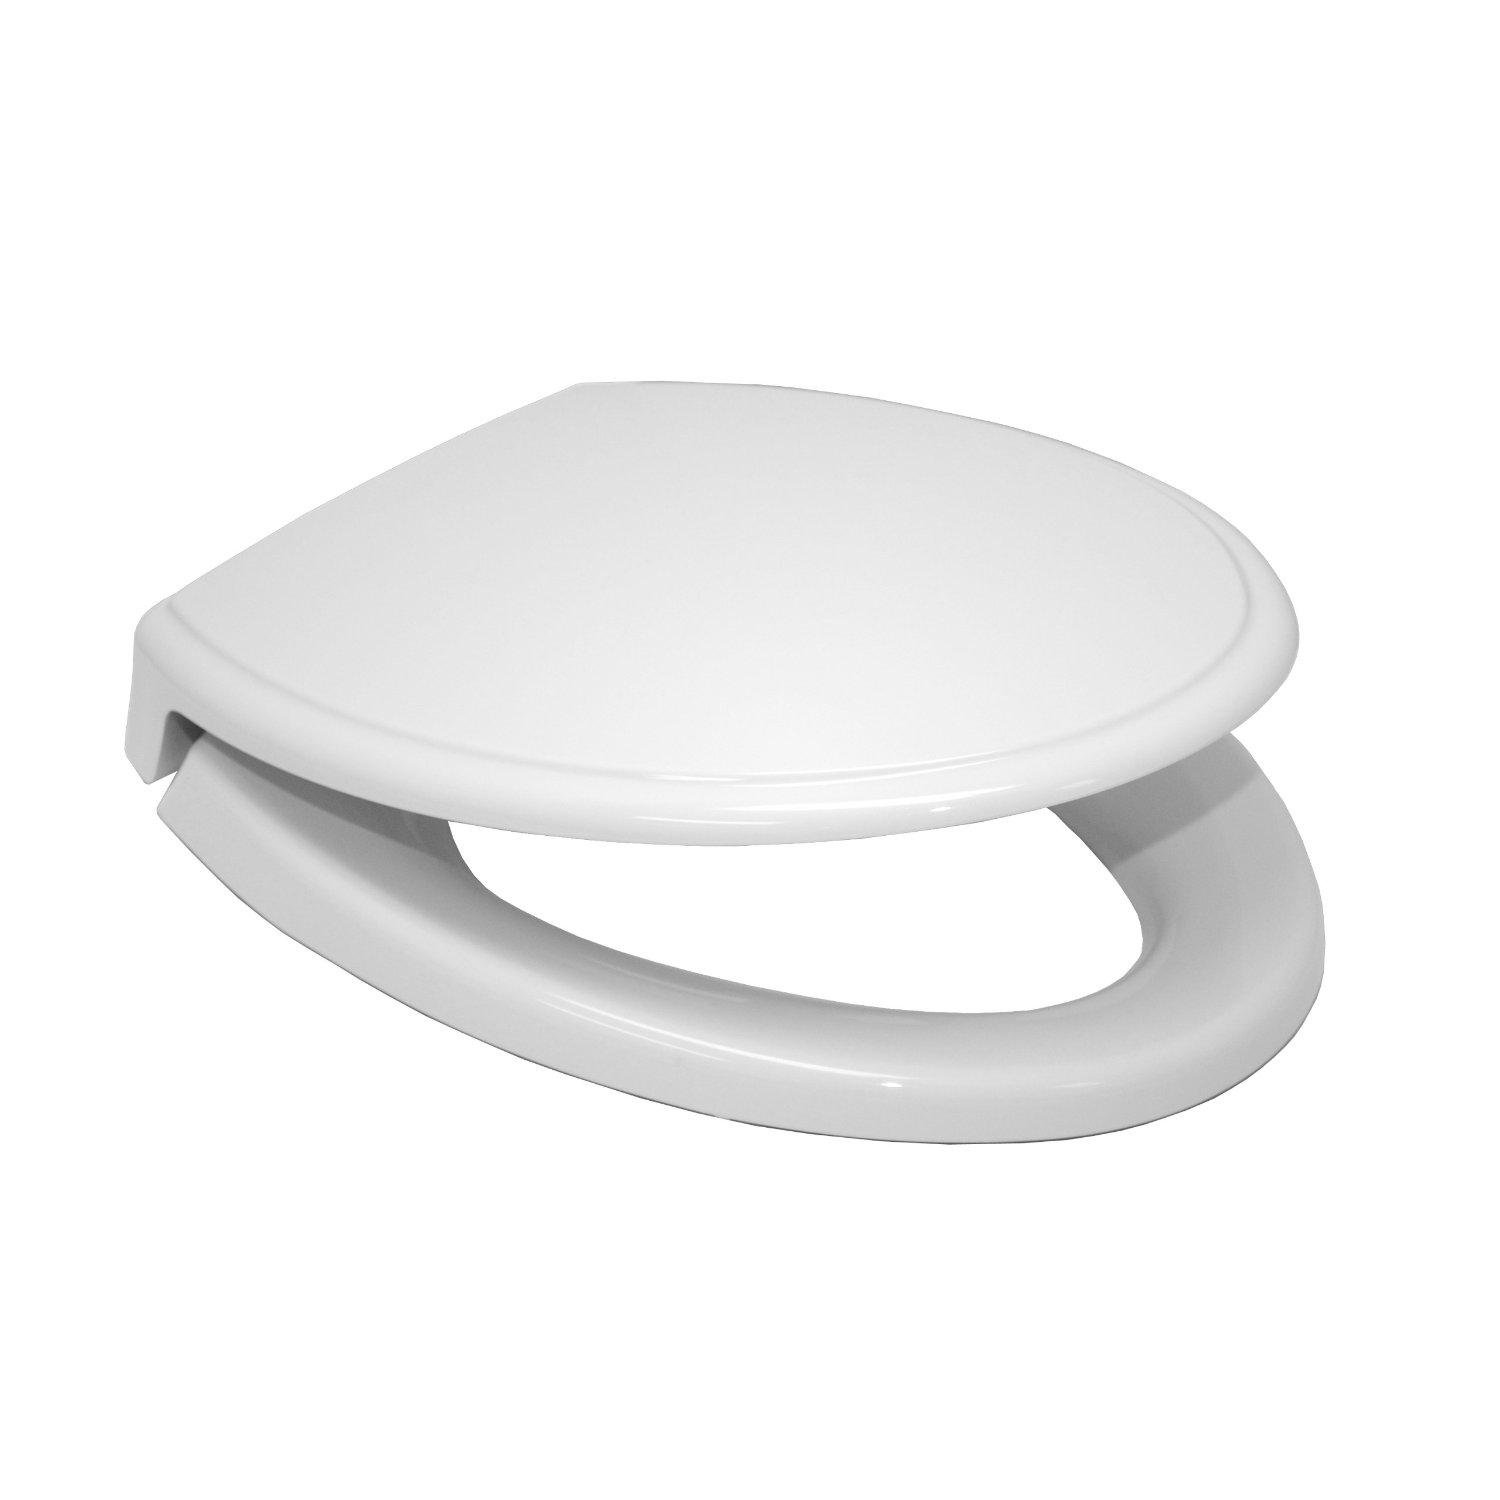 TOTO SS154#11 Traditional SoftClose Elongated Toilet Seat, Colonial White   Self  Closing Elongated Toilet Seat   Amazon.com